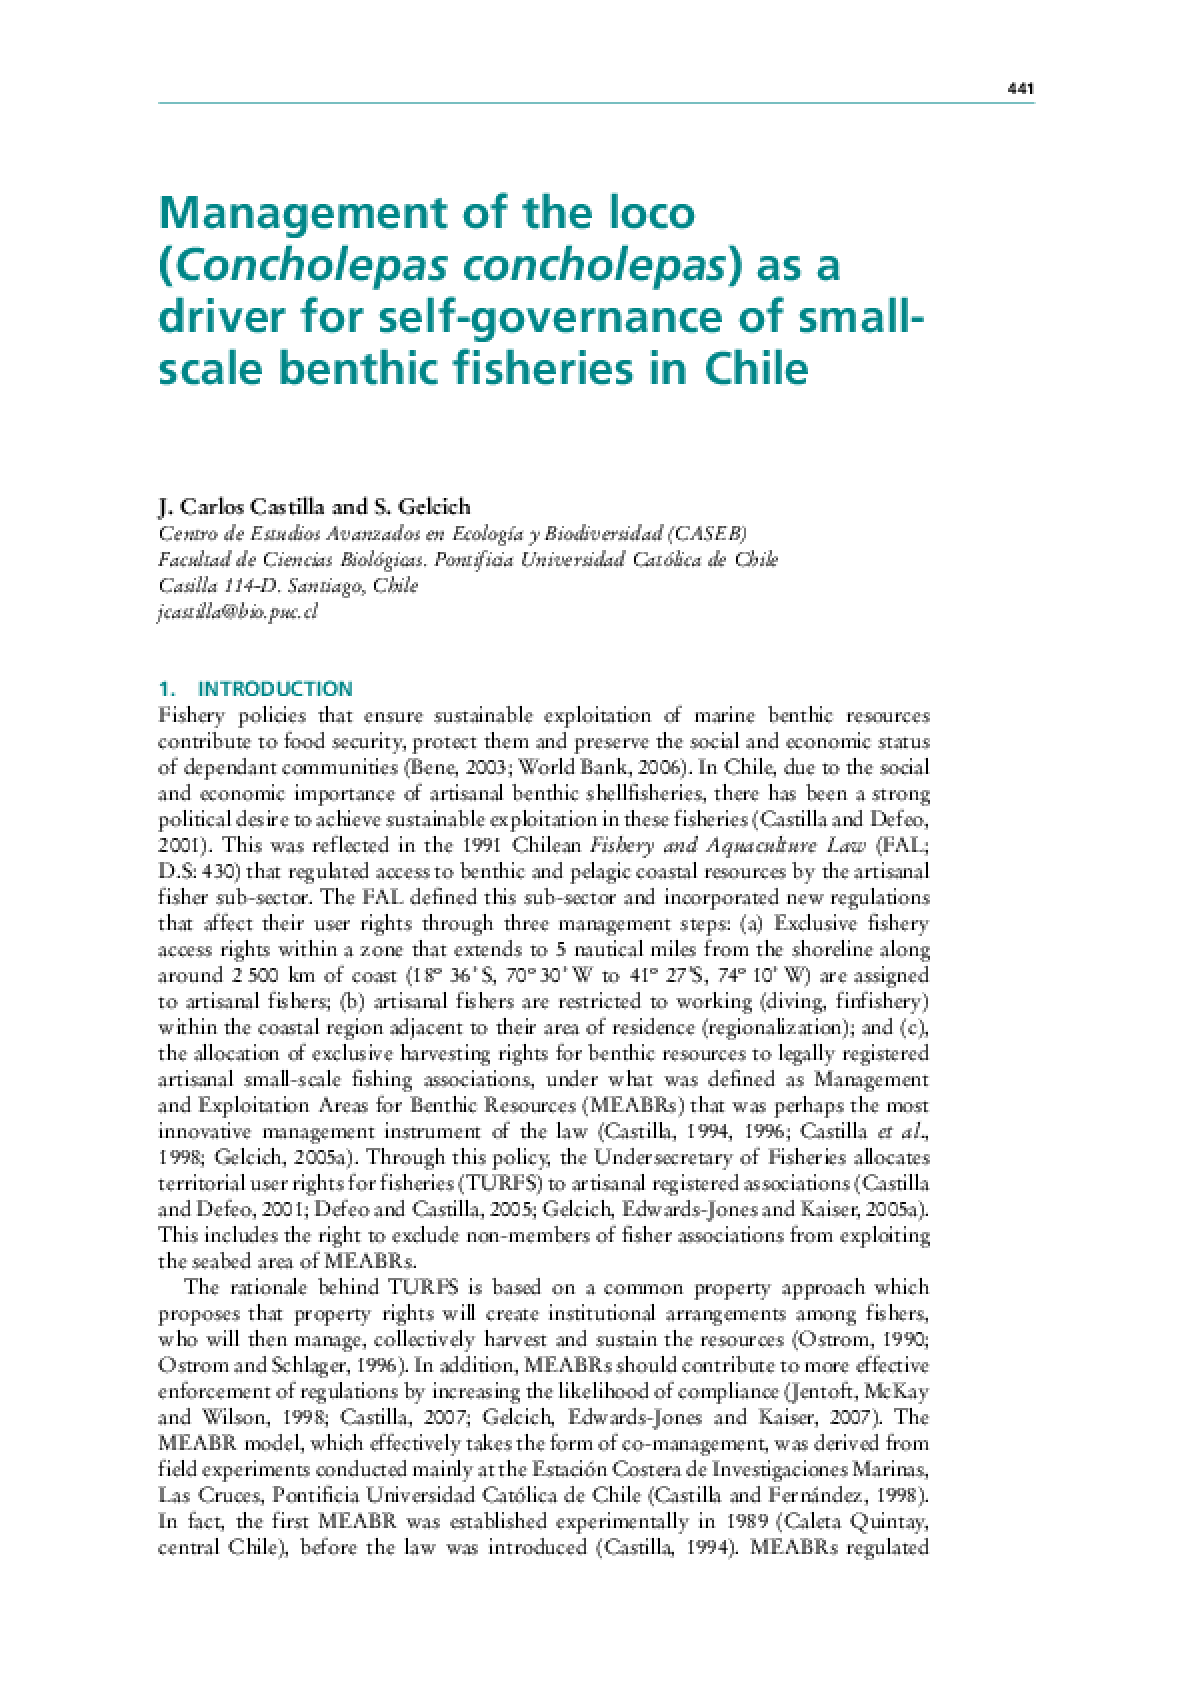 Management of the Loco (Concholepas concholepas) as a Driver for Self-governance of Small-scale Benthic Fisheries in Chile